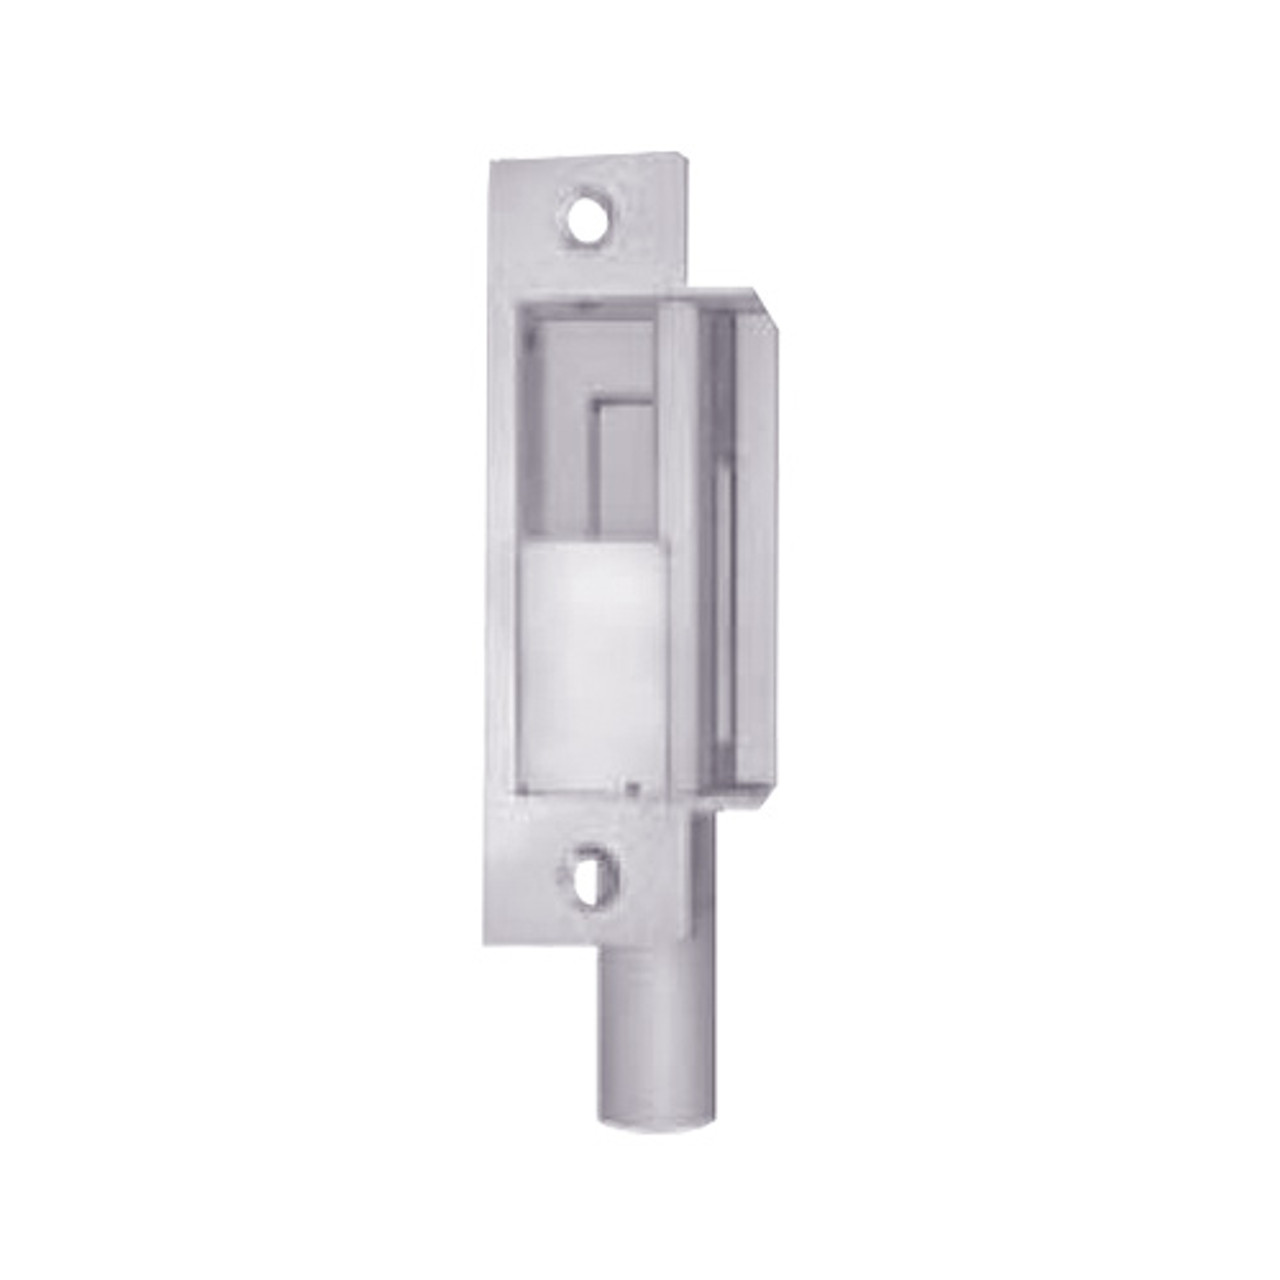 6210-DS-24VDC-US32 Von Duprin Electric Strike in Bright Stainless Steel Finish